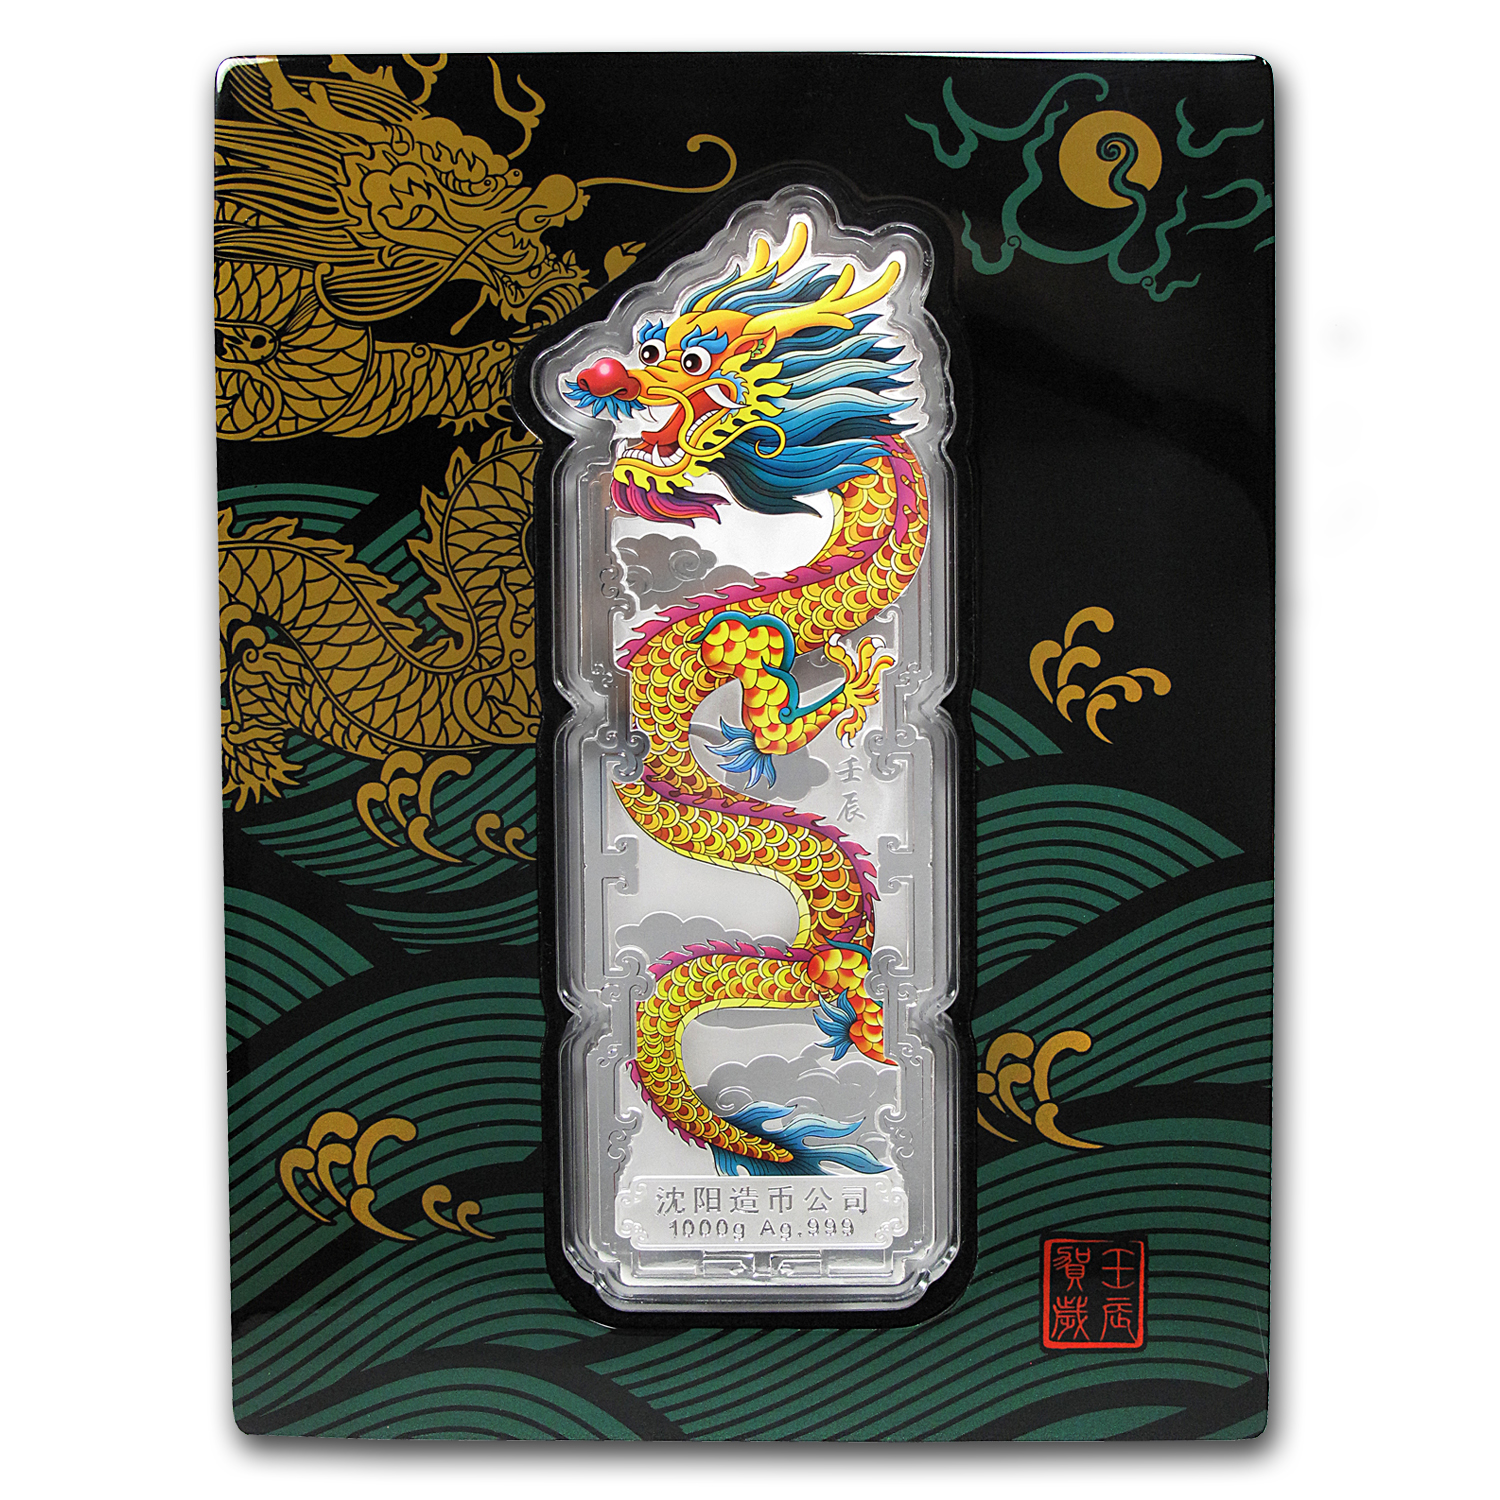 2012 China 1000 gram Silver Year of the Dragon Bar (Colorized)